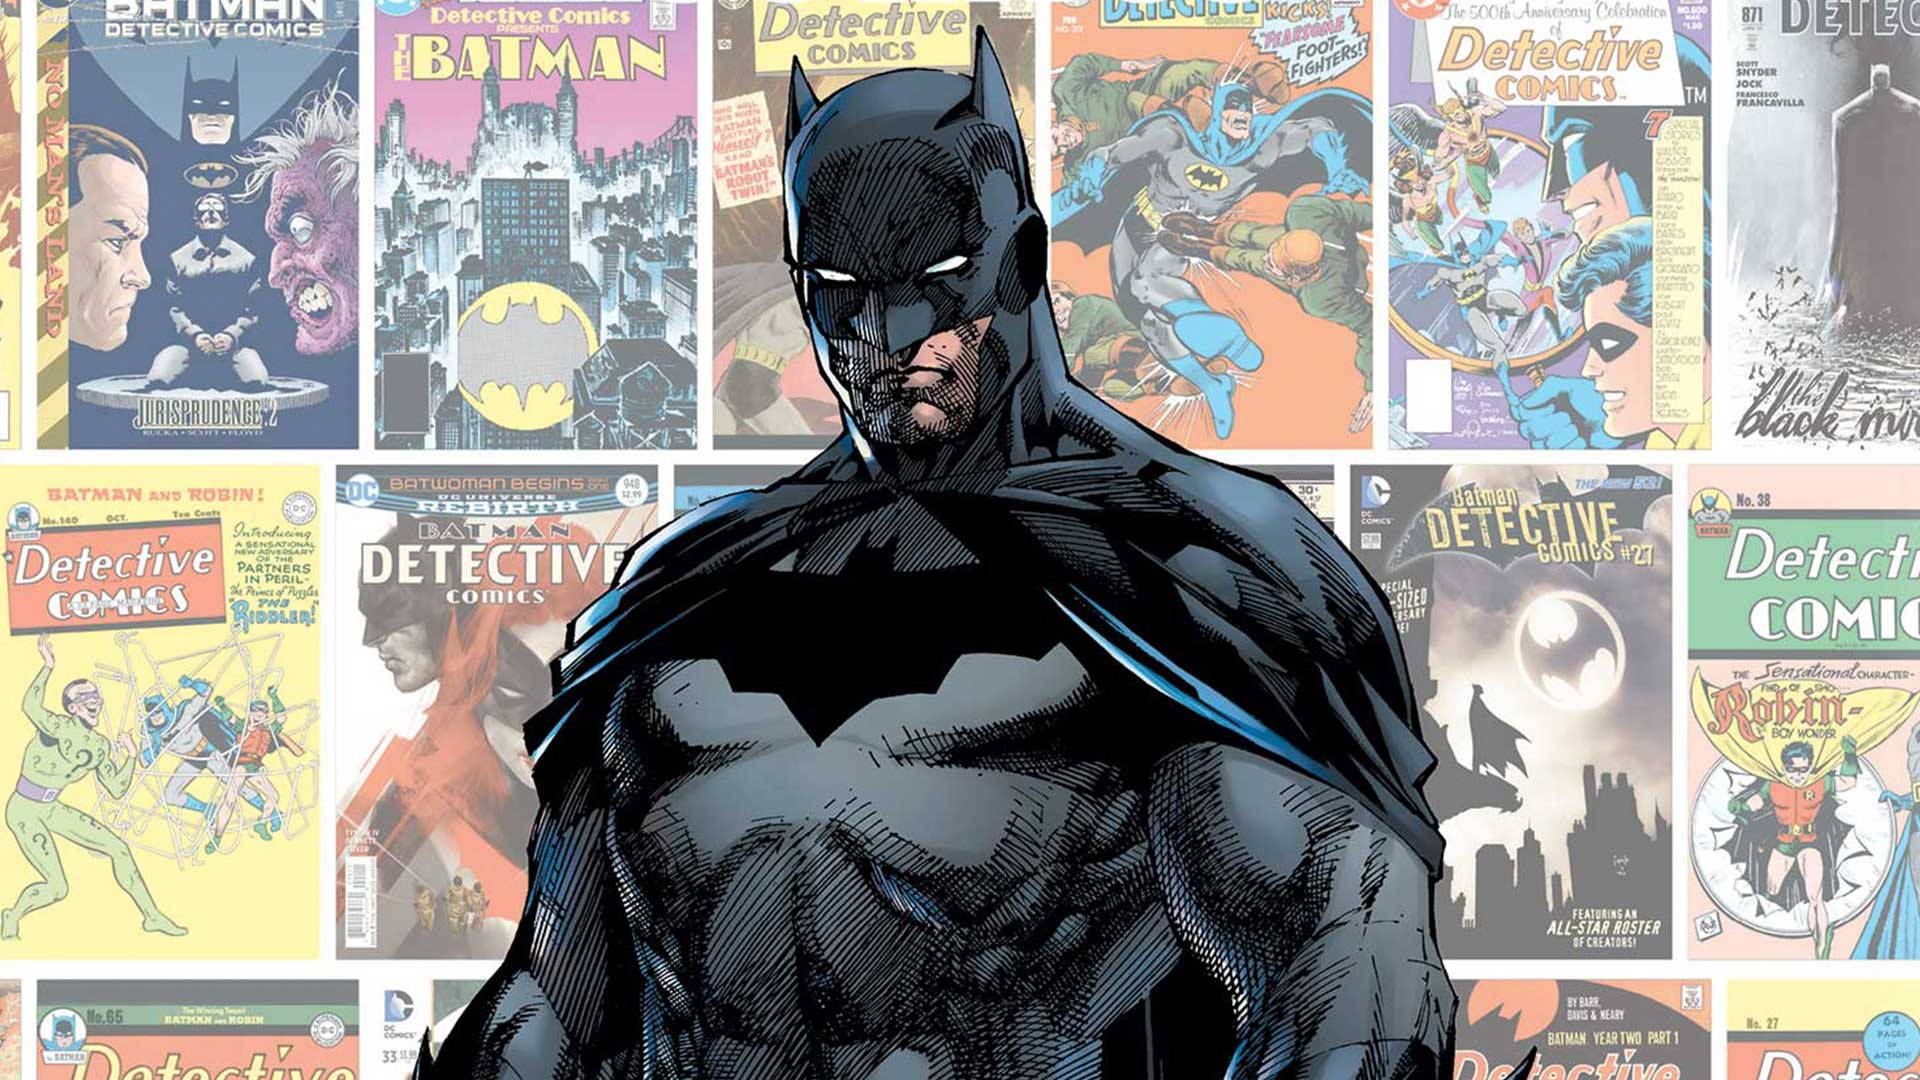 DETECTIVE COMICS 80 YEARS OF BATMAN DELUXE EDITION HARDCOVER 300 Pages